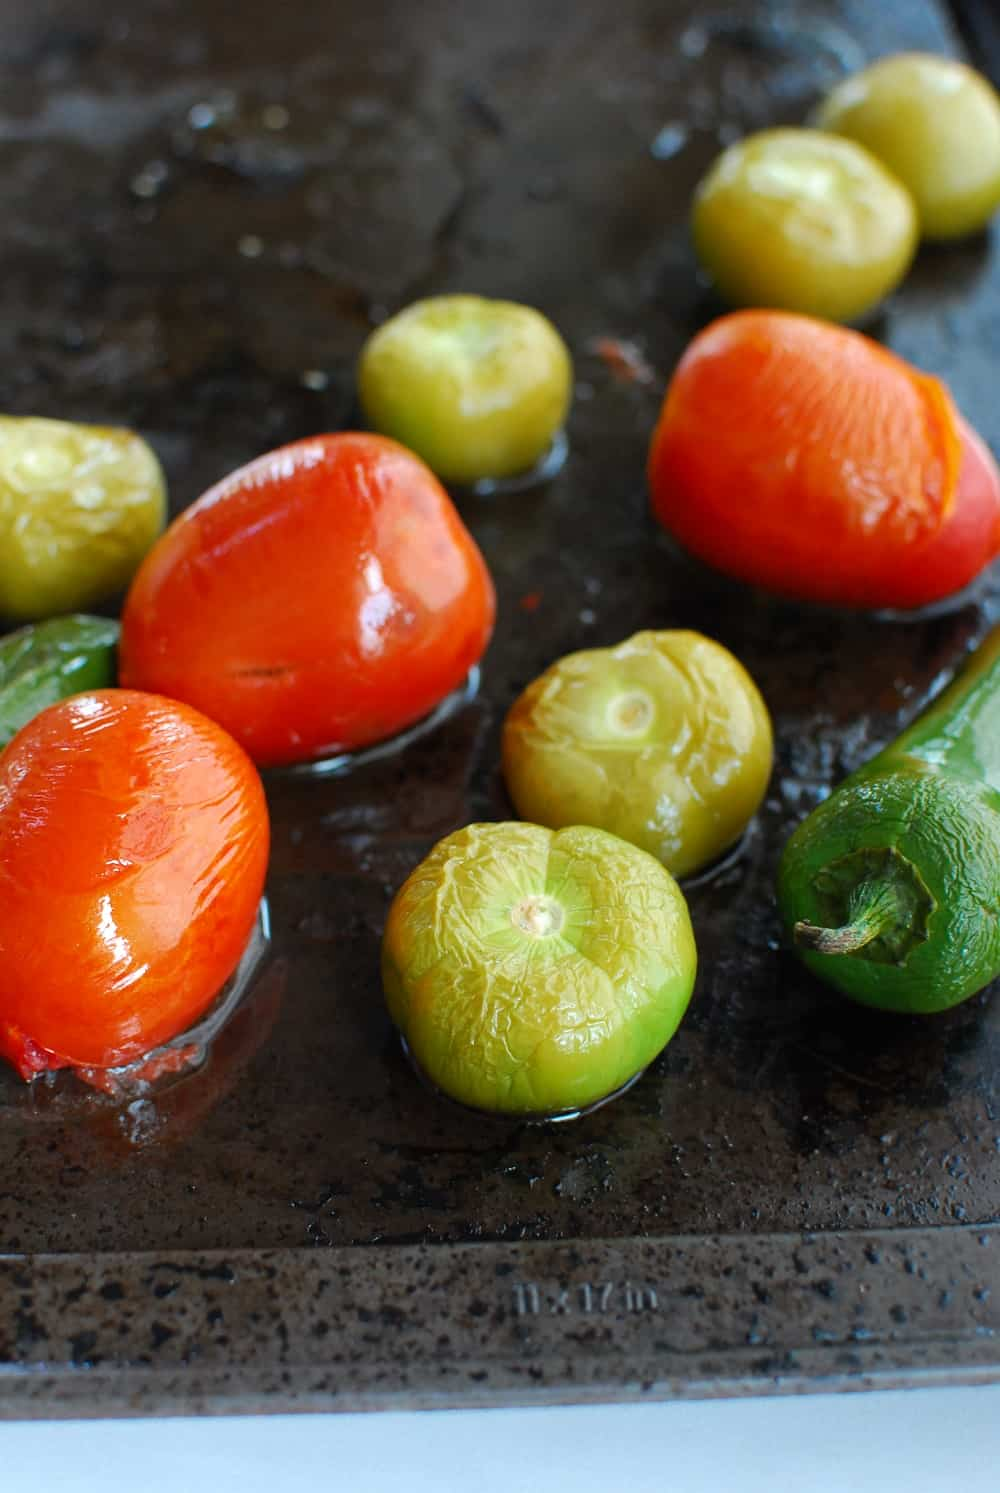 roasted tomatillos, tomatoes, and jalapenos on a baking sheet